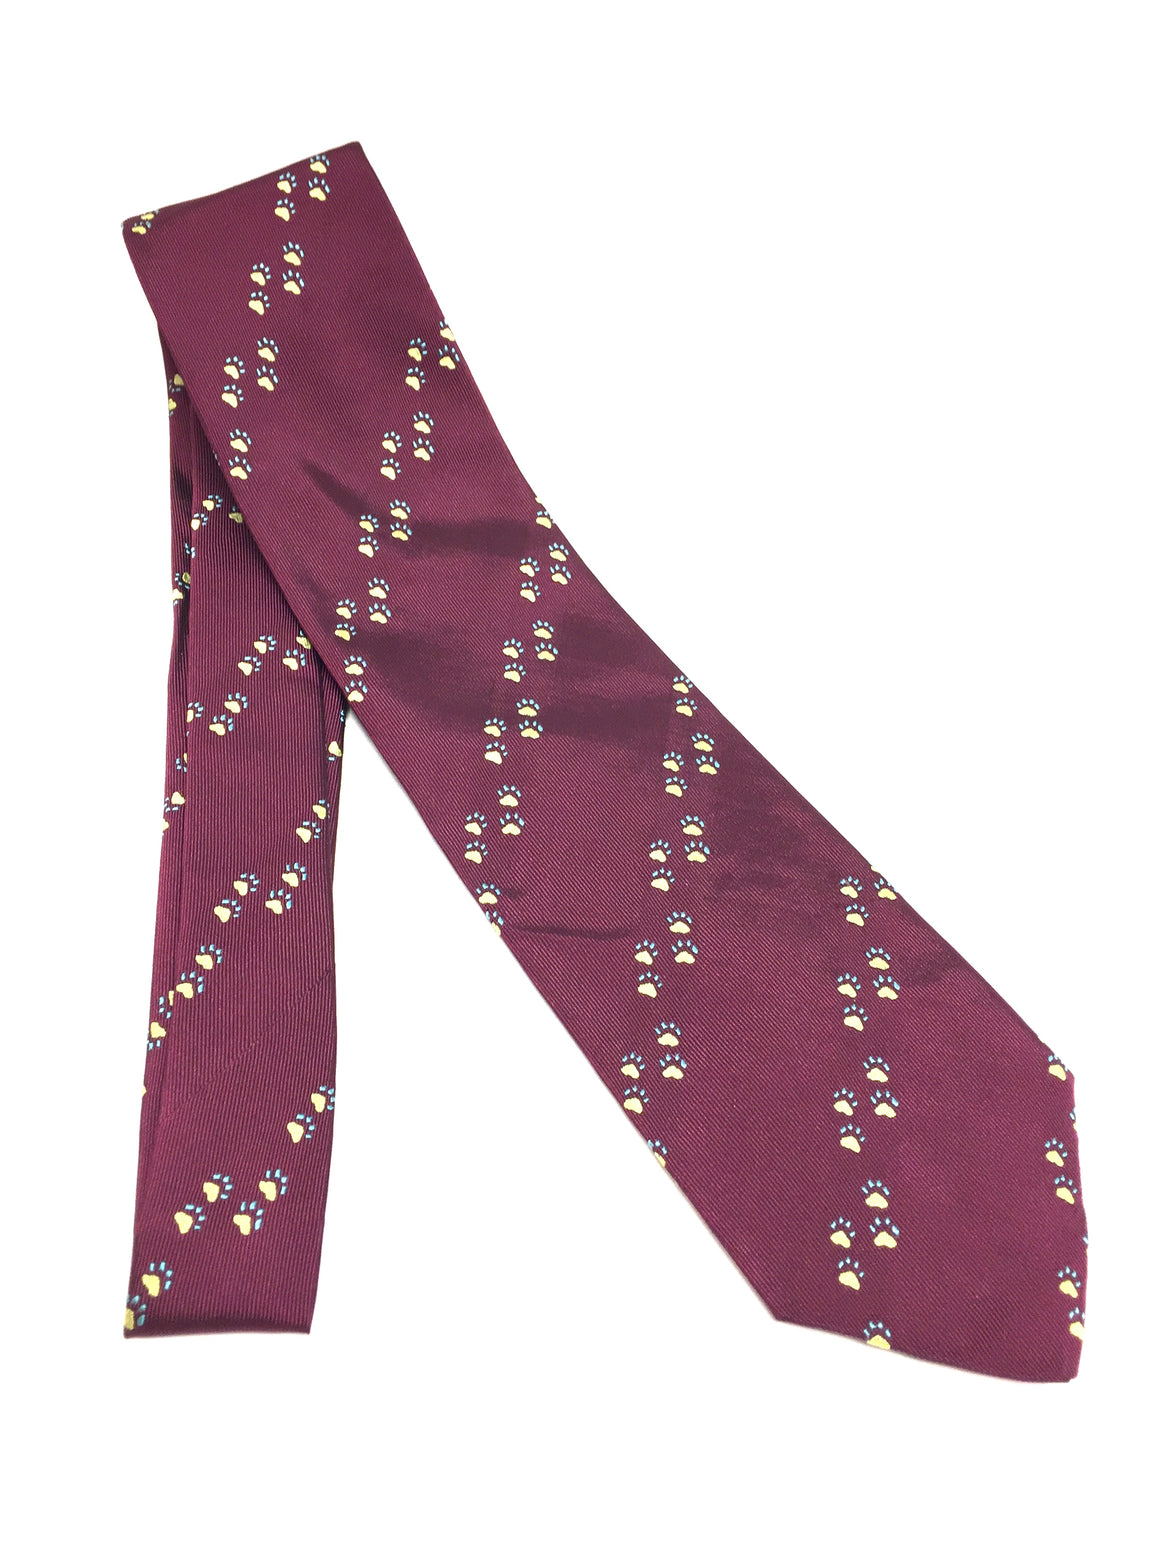 New PURDEY Burgundy Diagonal Paw-Print Textured Silk Men's Neck Tie